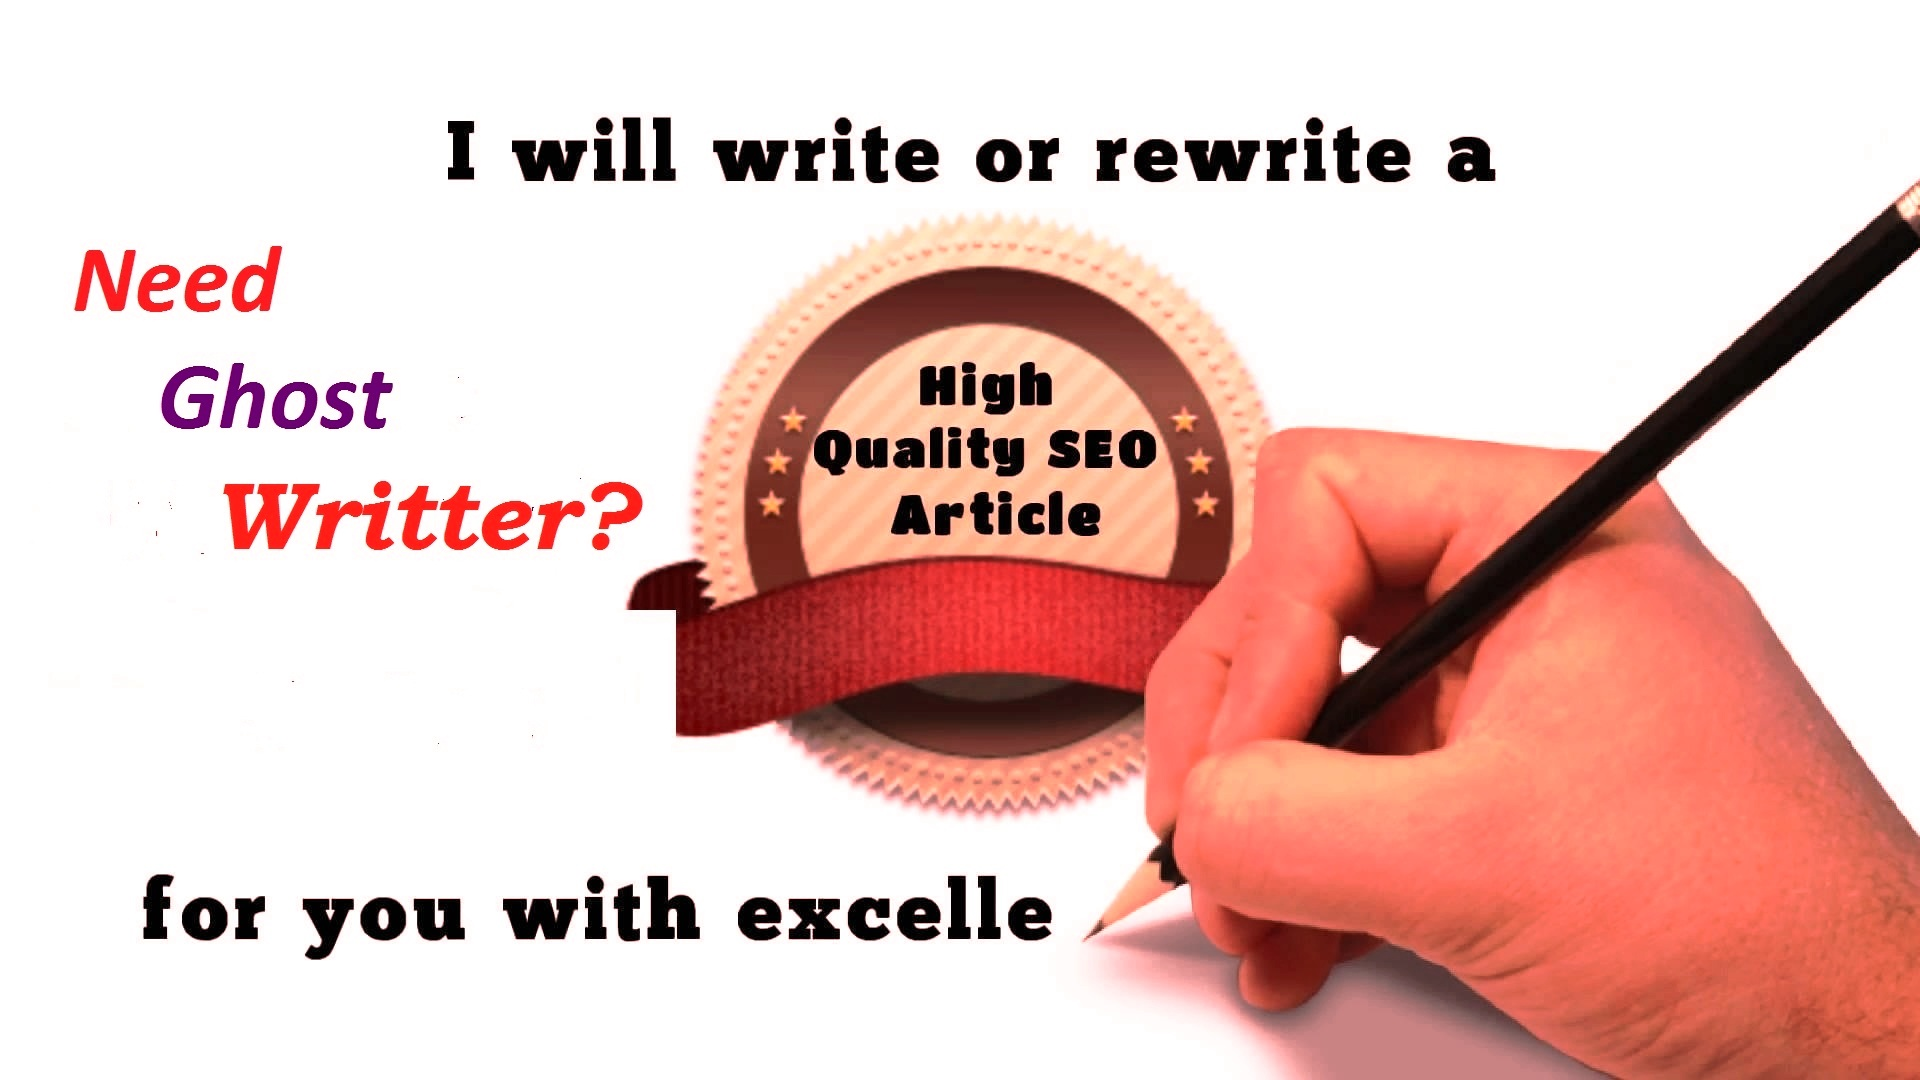 SEO Article Freelance Writer  - I Will Write 300 - 450+ SEO Article For Blog Or Website Post Within 24 Hours - Hurry Order Now Limited Time OFFER!!!